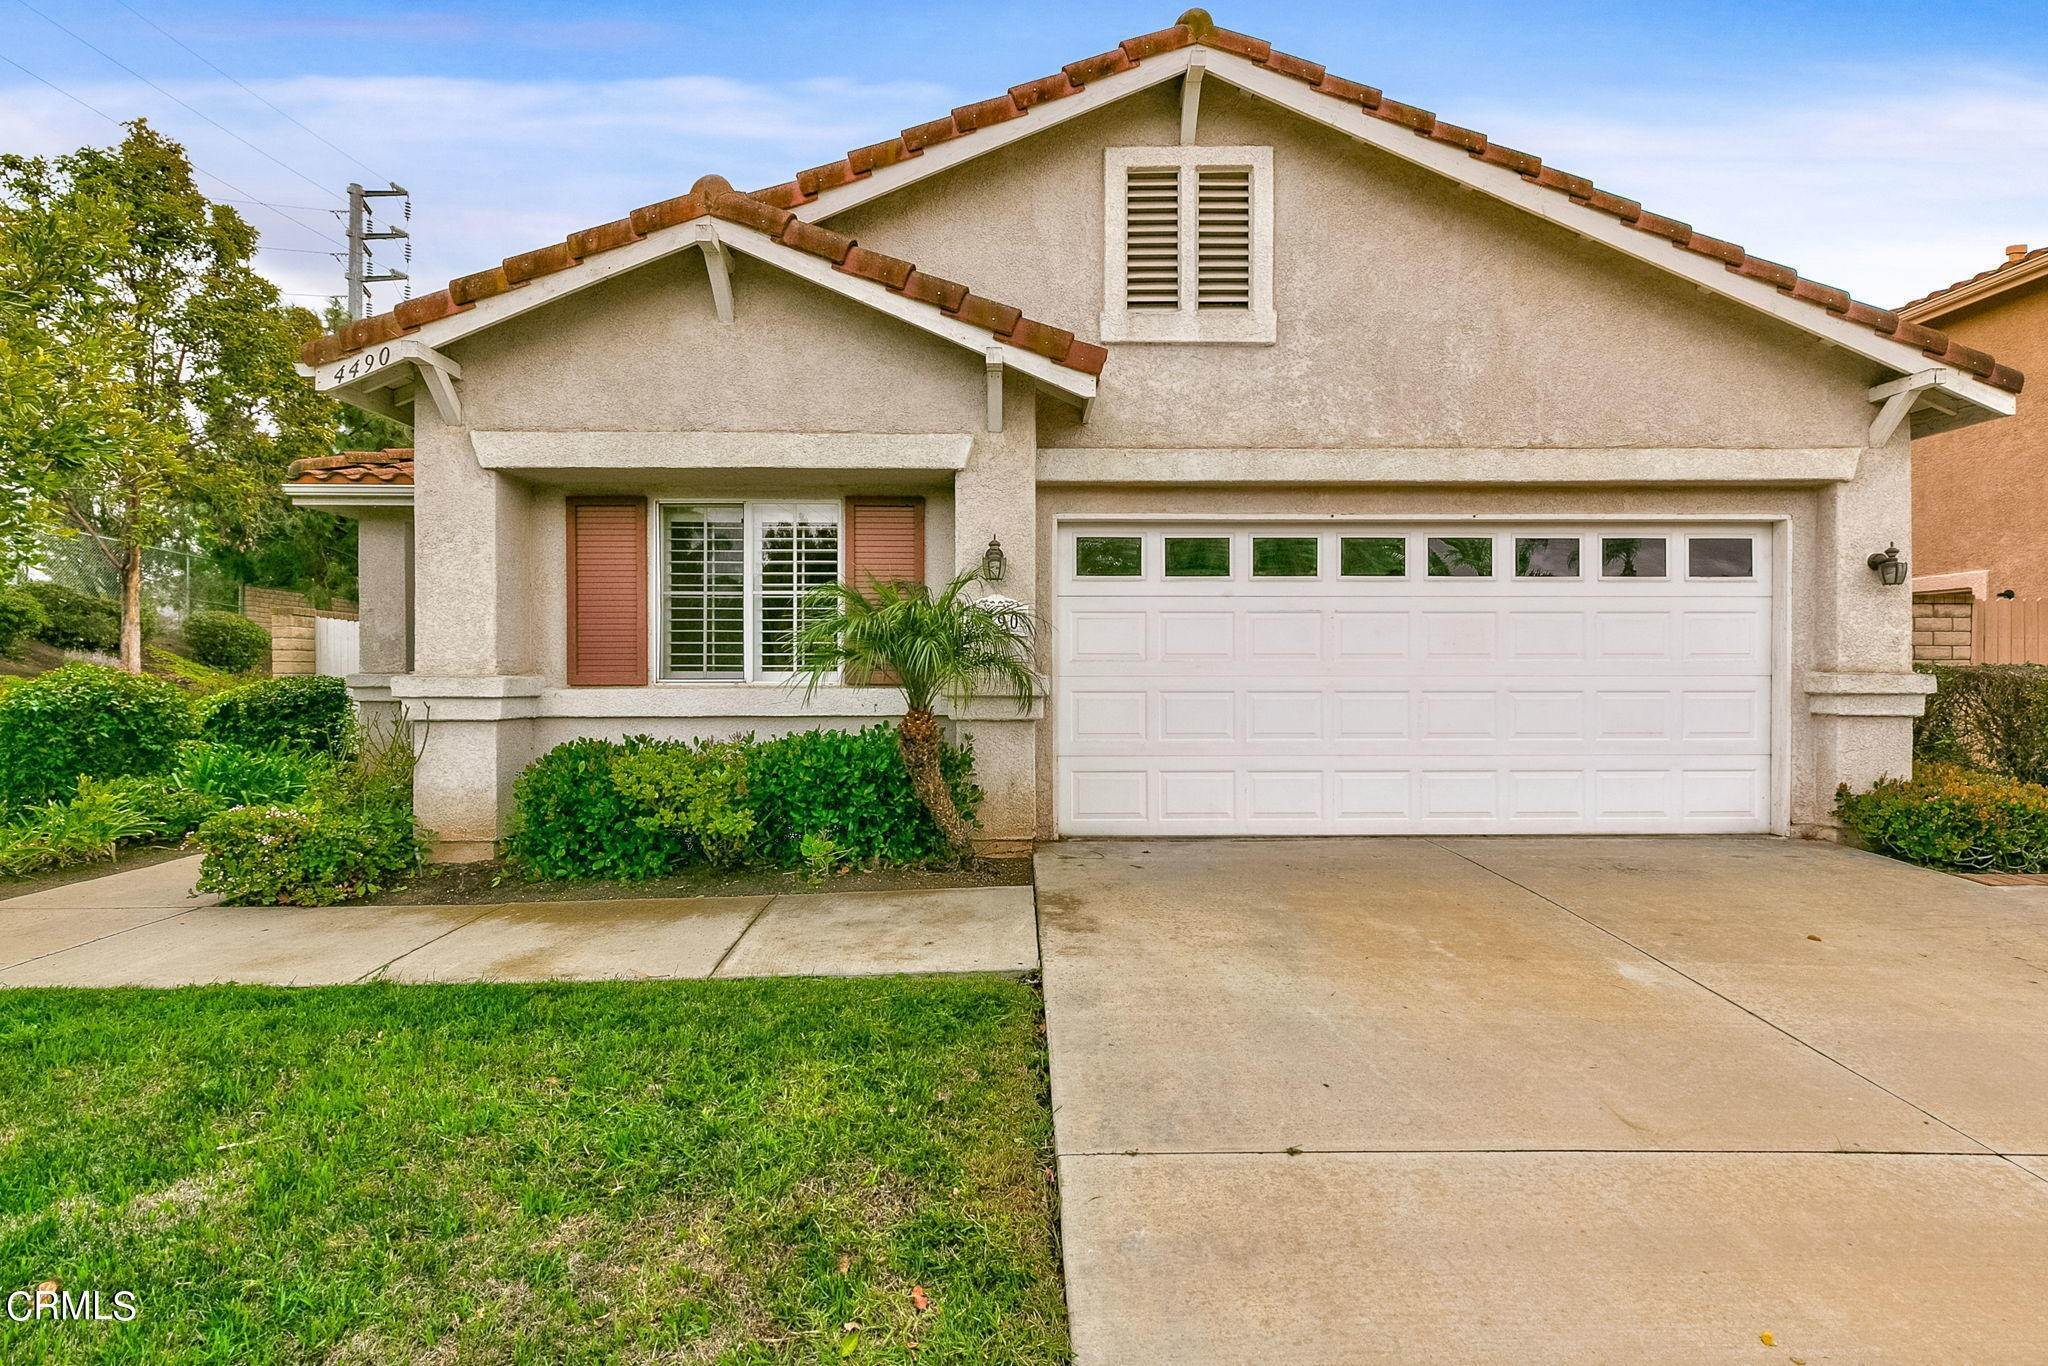 2. Single Family Homes for Sale at 4490 El Corazon Court Camarillo, California 93012 United States